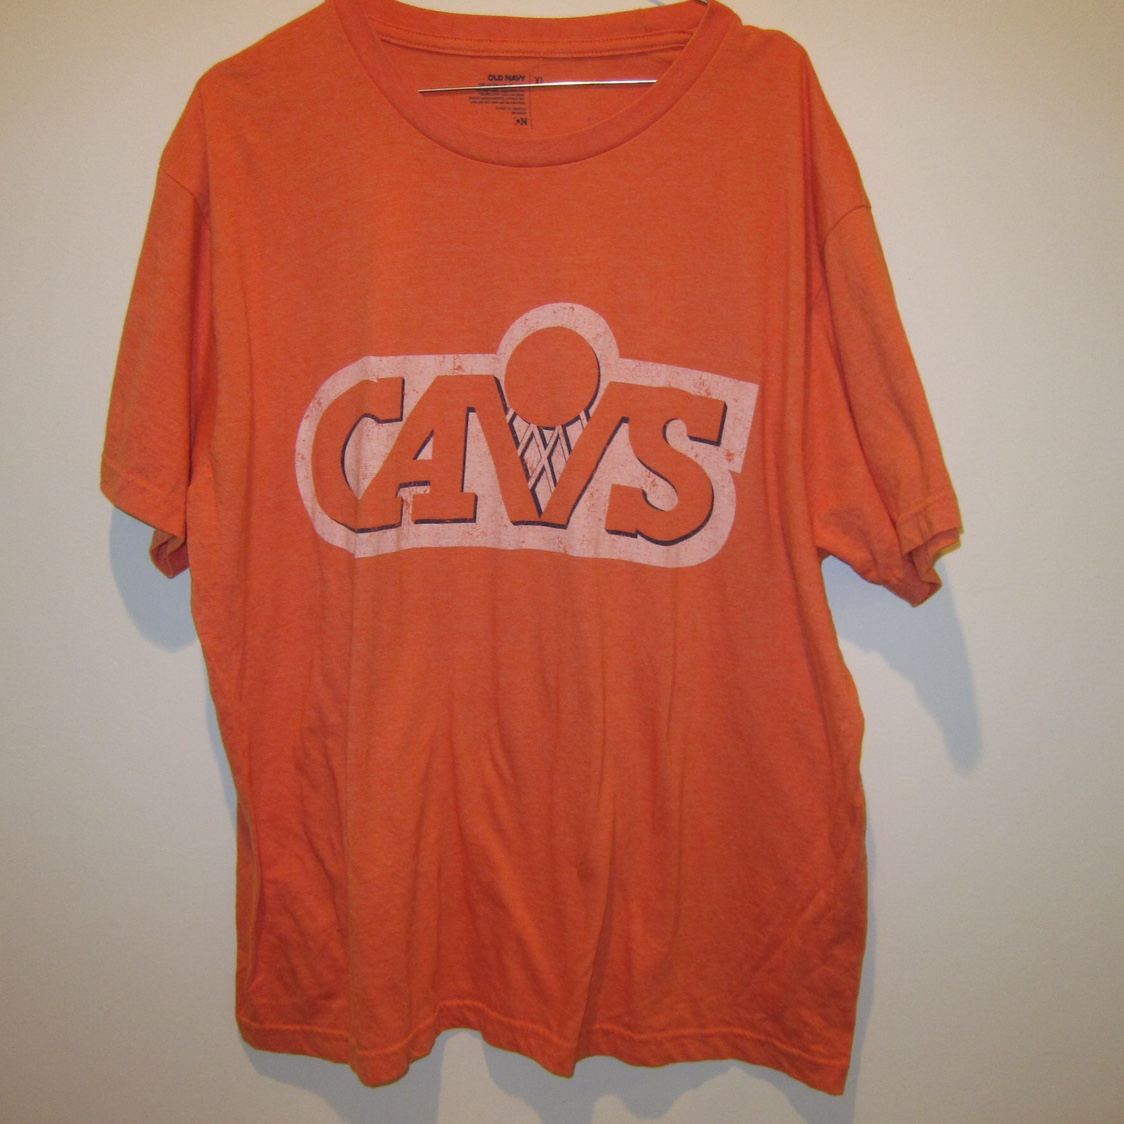 save off c10fa 3f163 Retro Cleveland Cavaliers T Shirt Mens Size XL... - Depop